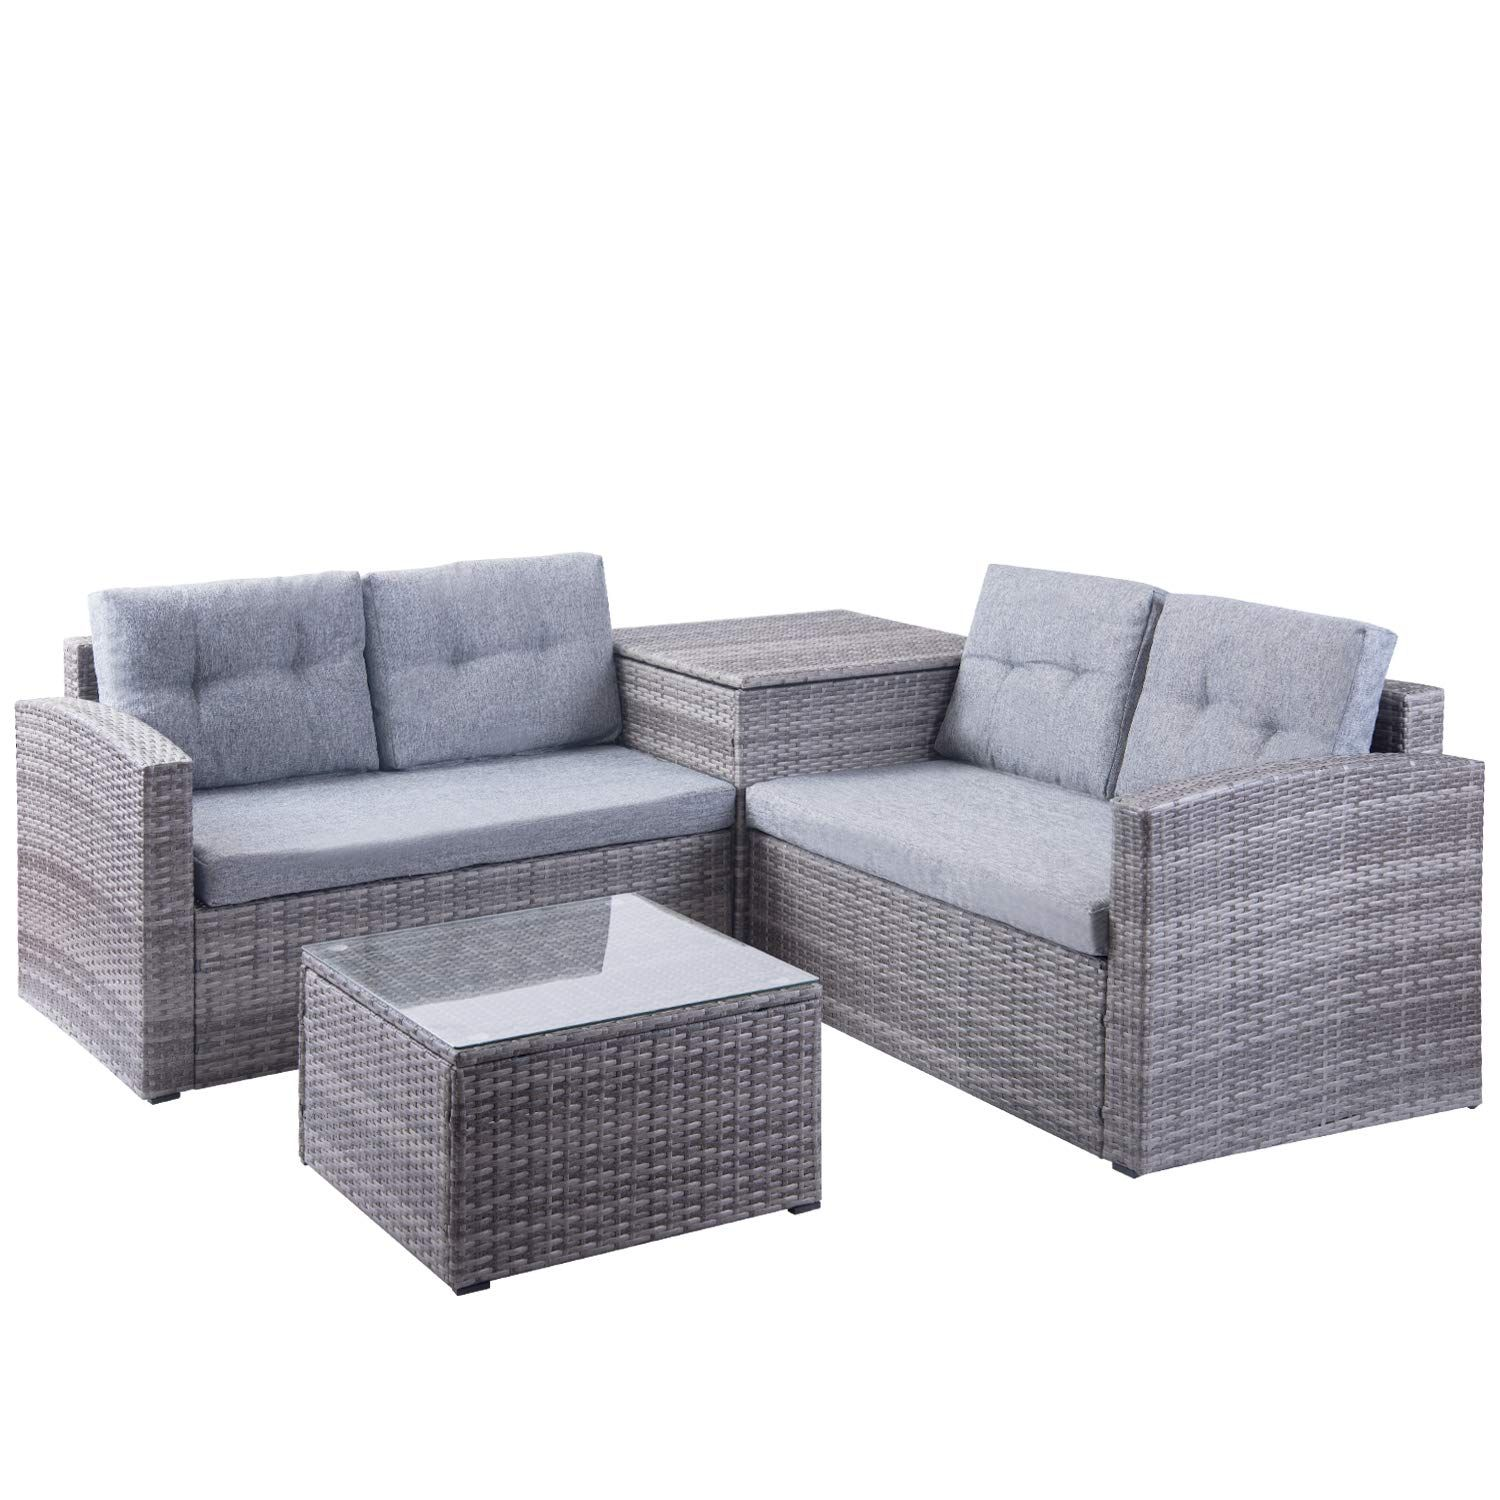 Leisure Zone Patio Furniture Set 3 Piece Pe Rattan Wicker Chairs Grey Cushion With Coffee Tabl Outdoor Furniture Sofa Wicker Sofa Outdoor Outdoor Storage Boxes